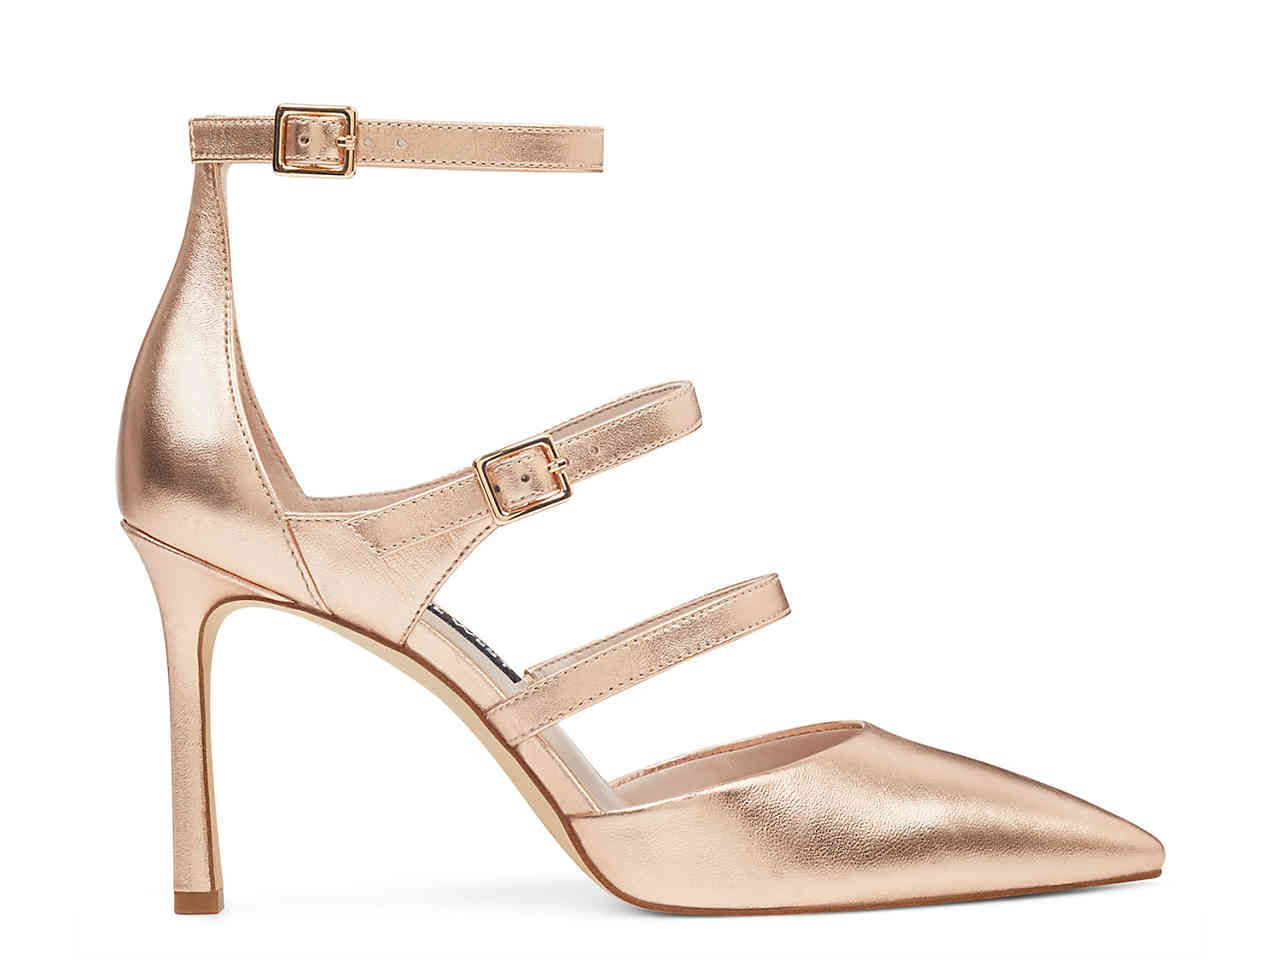 Nine West Enchanting Pump Women's Shoes | DSW | Women shoes